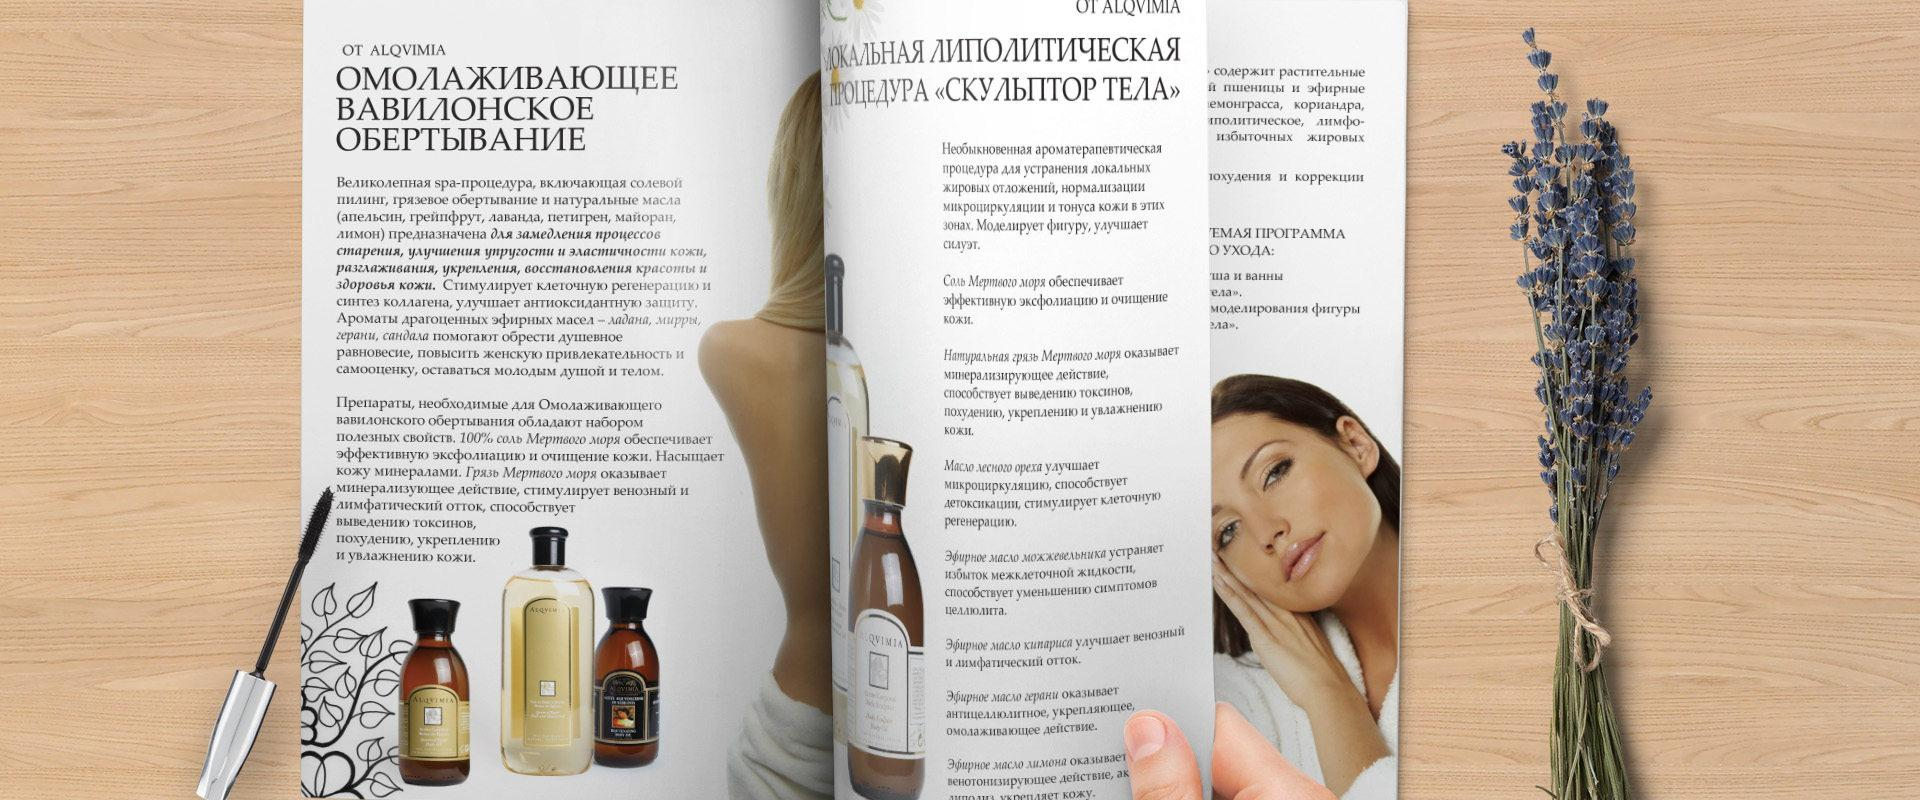 Design журнала for the medical center